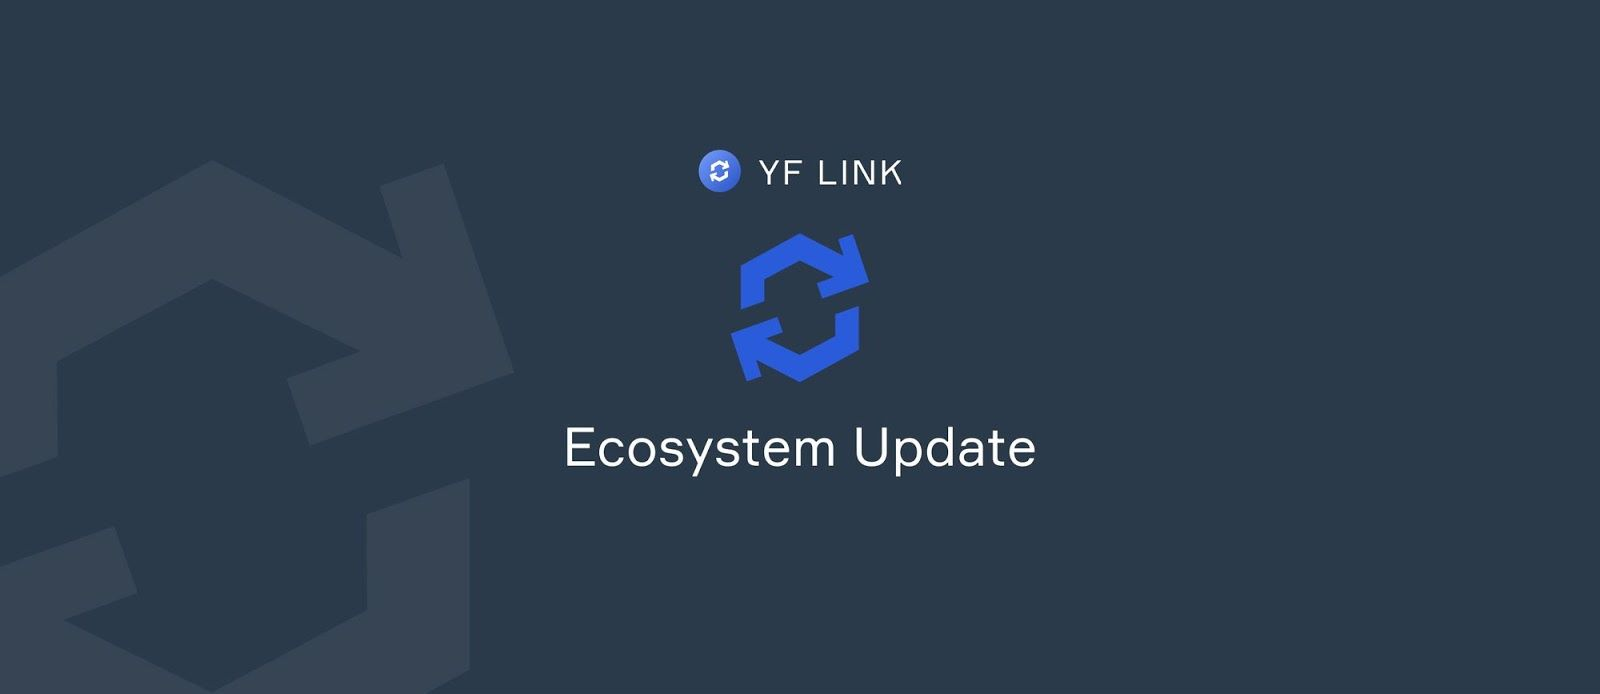 YF Link Roadmap: LINKSWAP Development, Chainlink Grant Application, and More